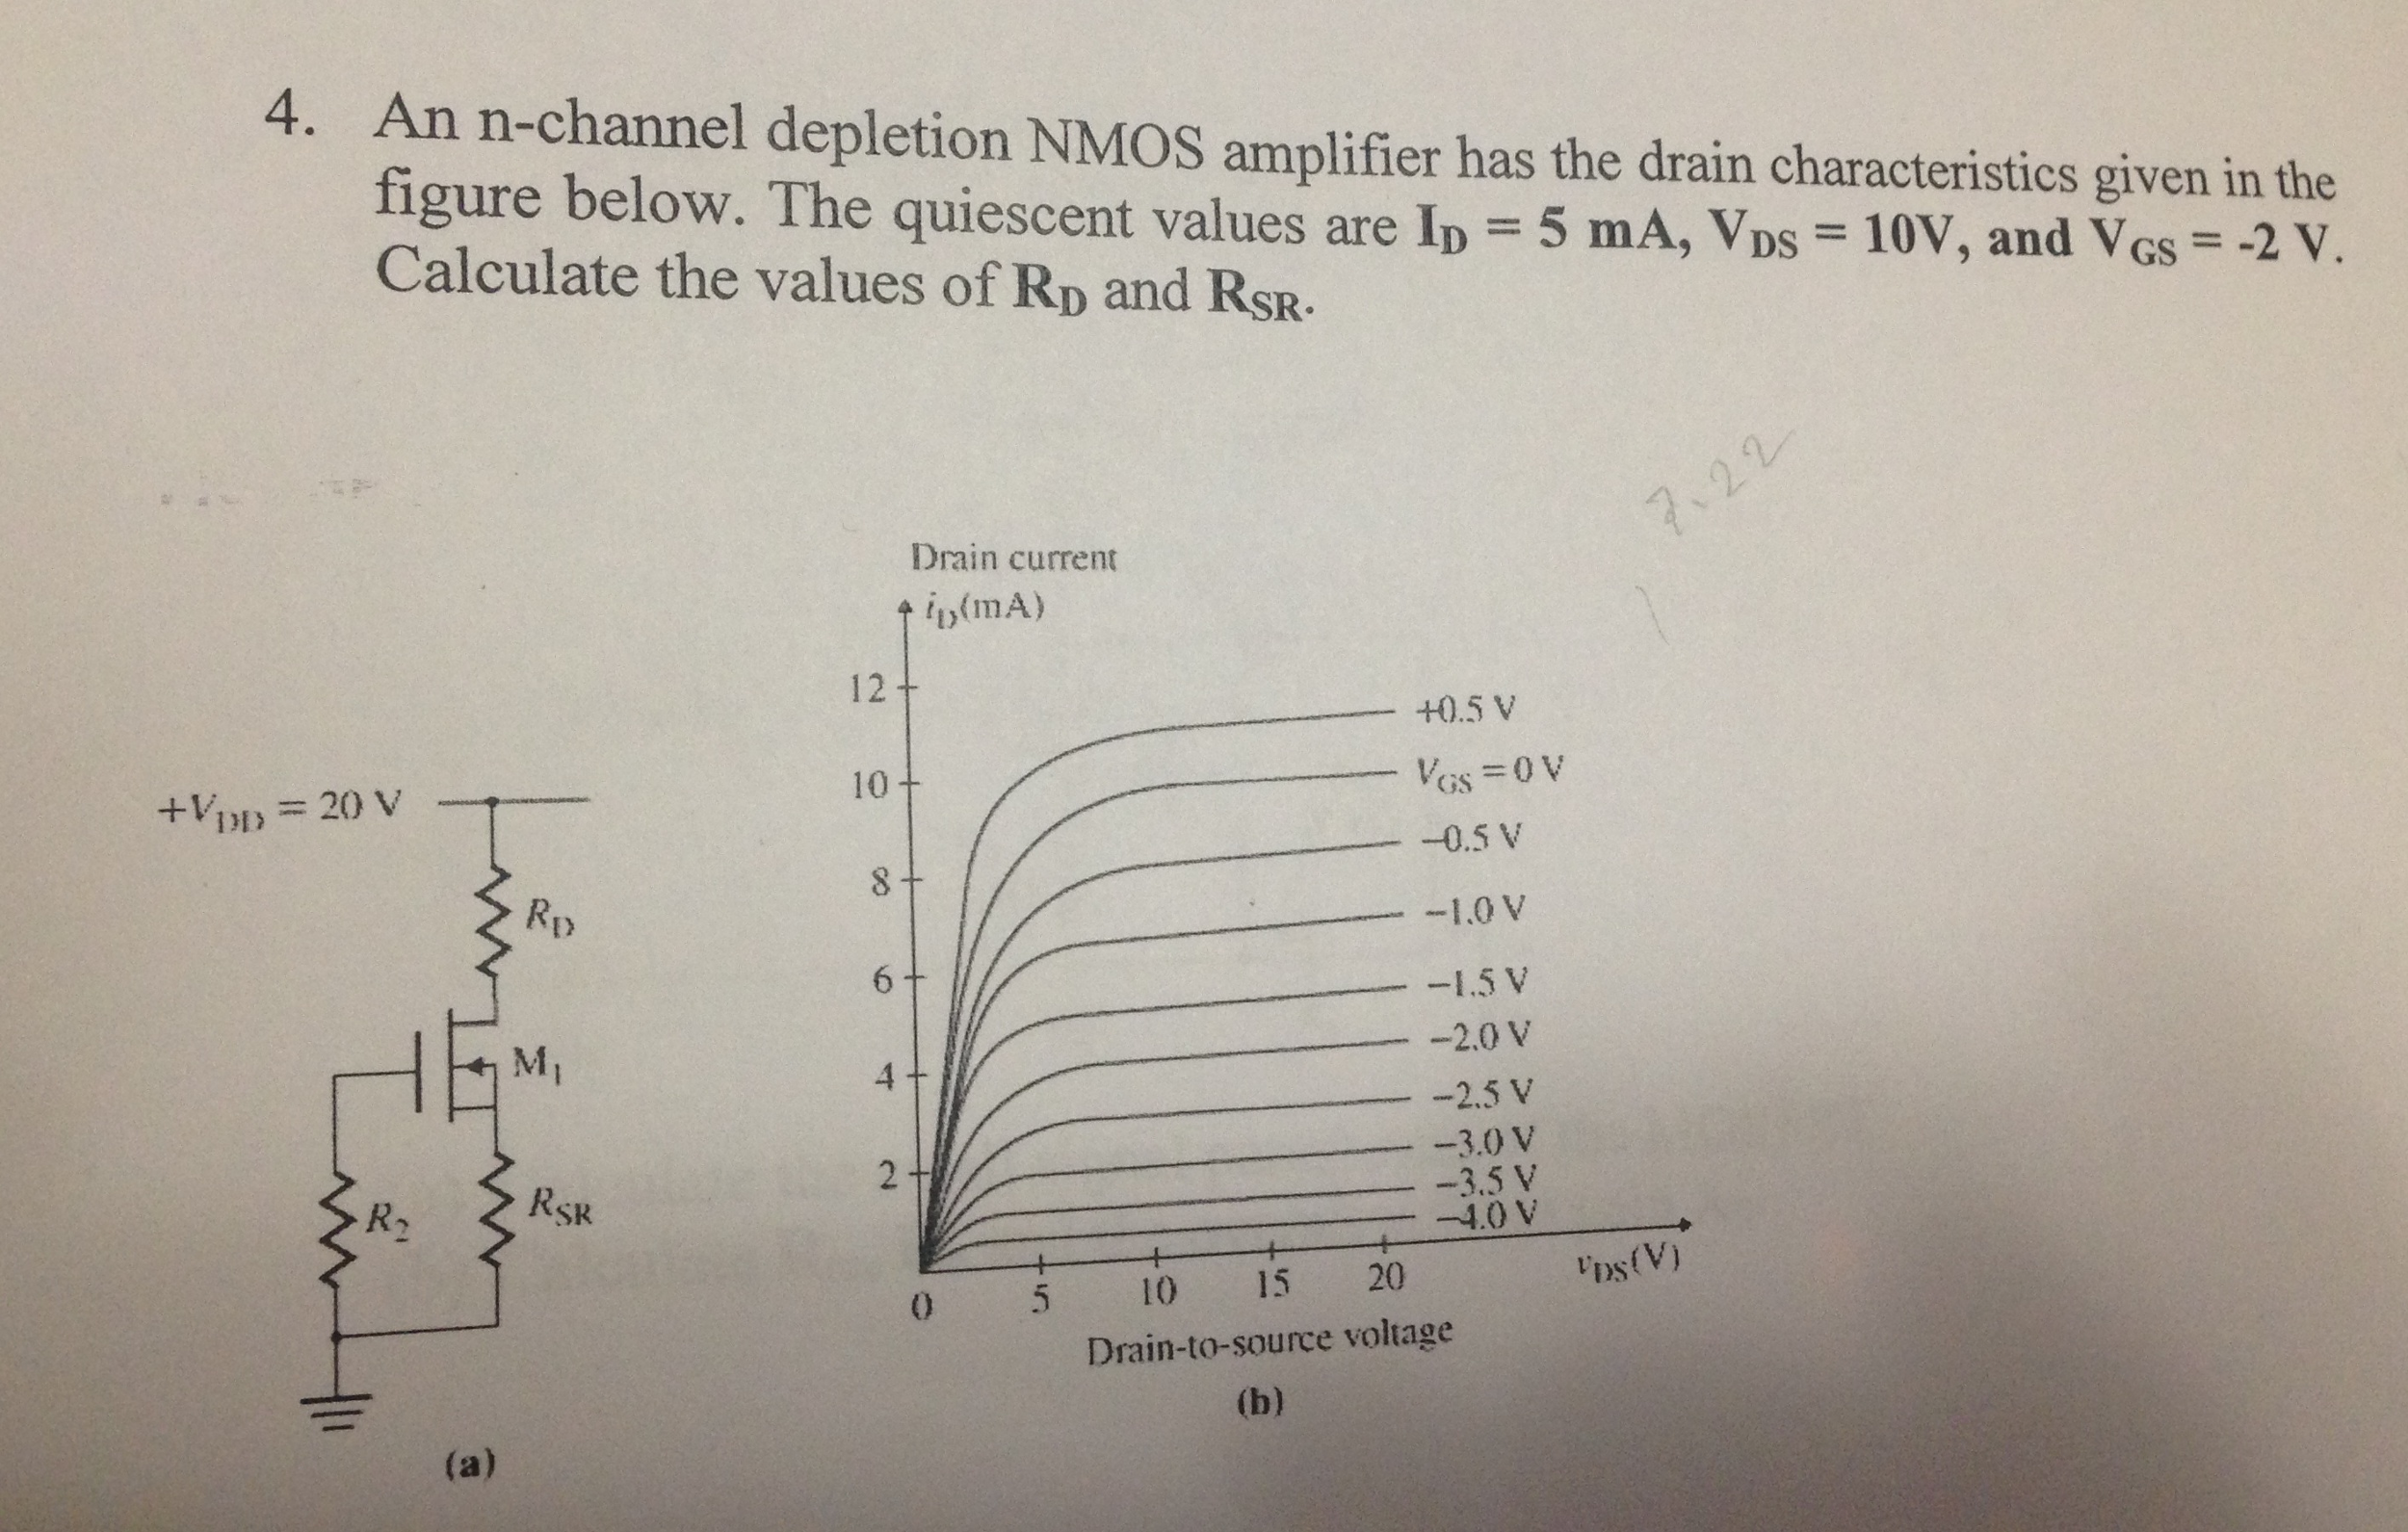 An n-channel depletion NMOS amplifier has the drai